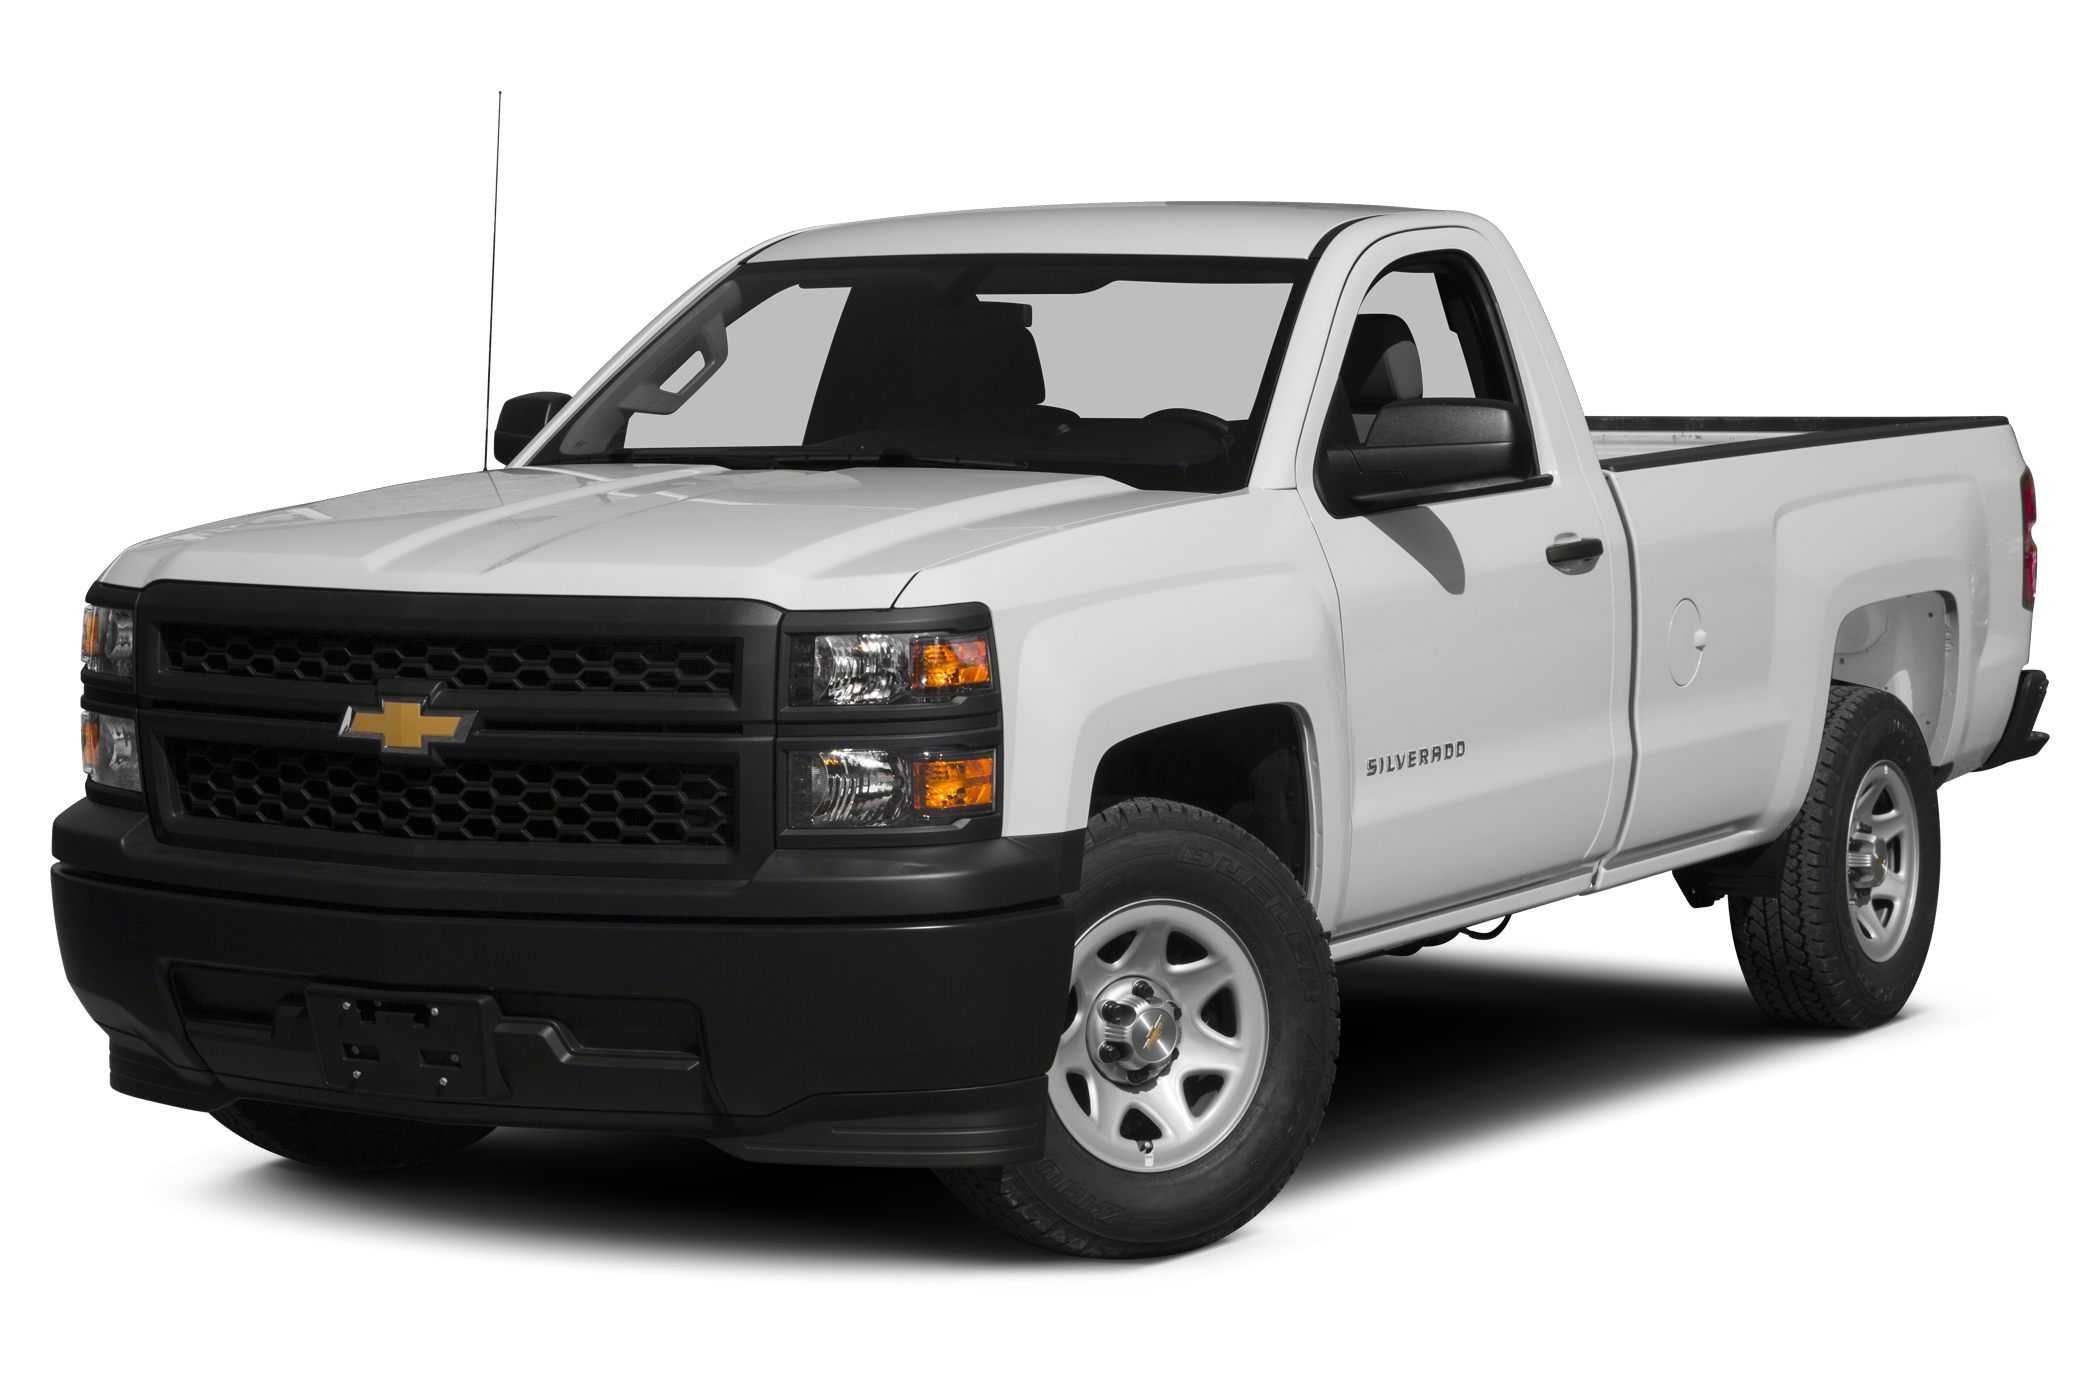 2015 Chevrolet Silverado 1500 1LT Extended Cab Pickup for sale in Norwich for $45,060 with 3 miles